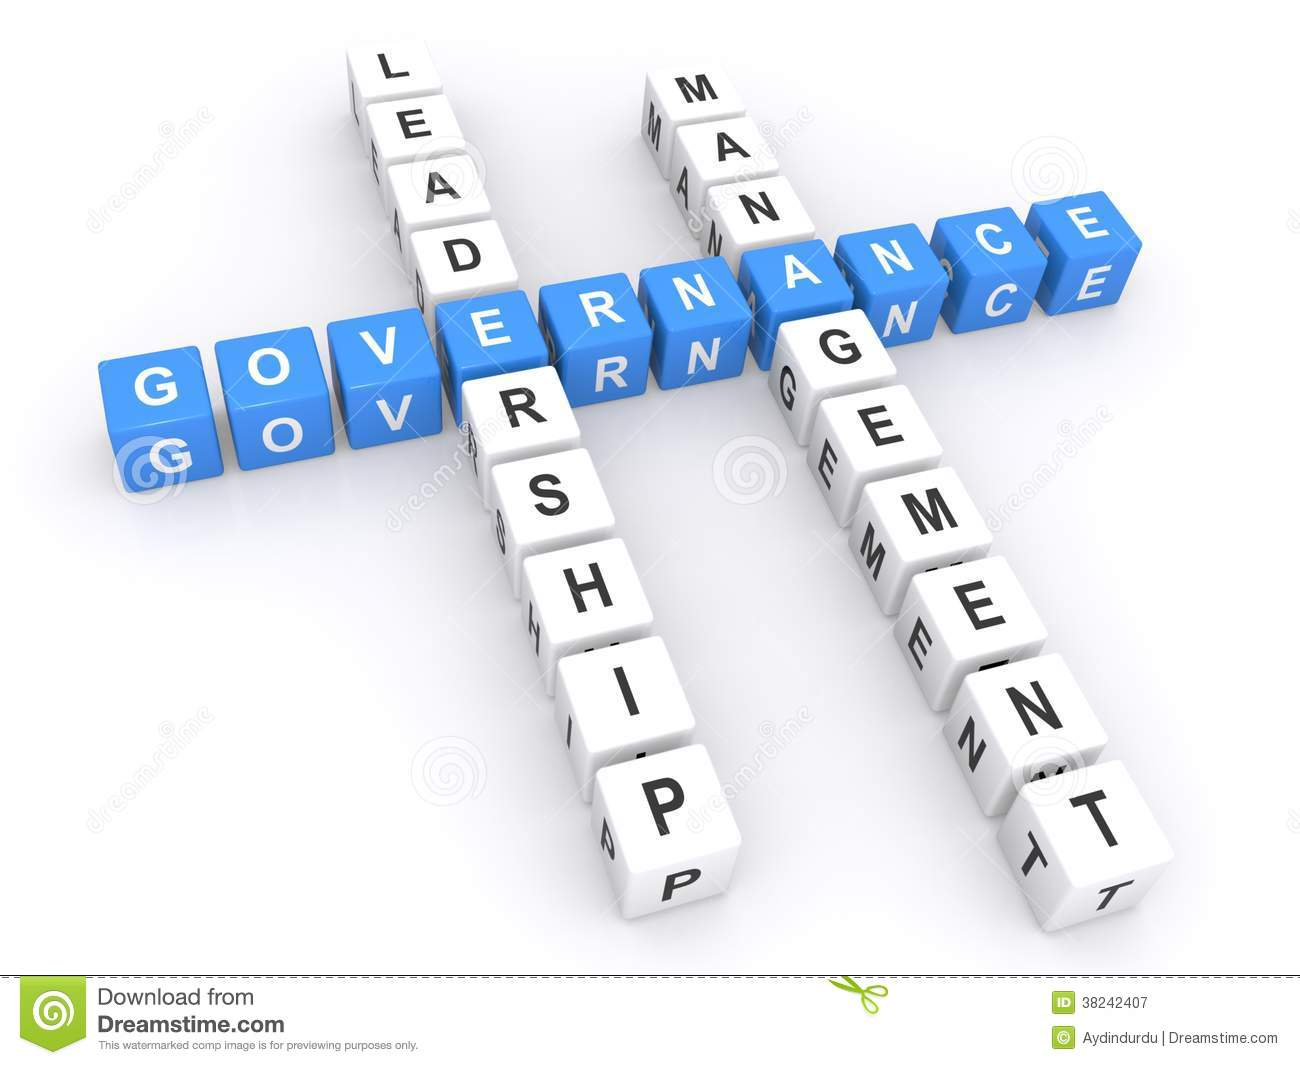 Governance clipart free.